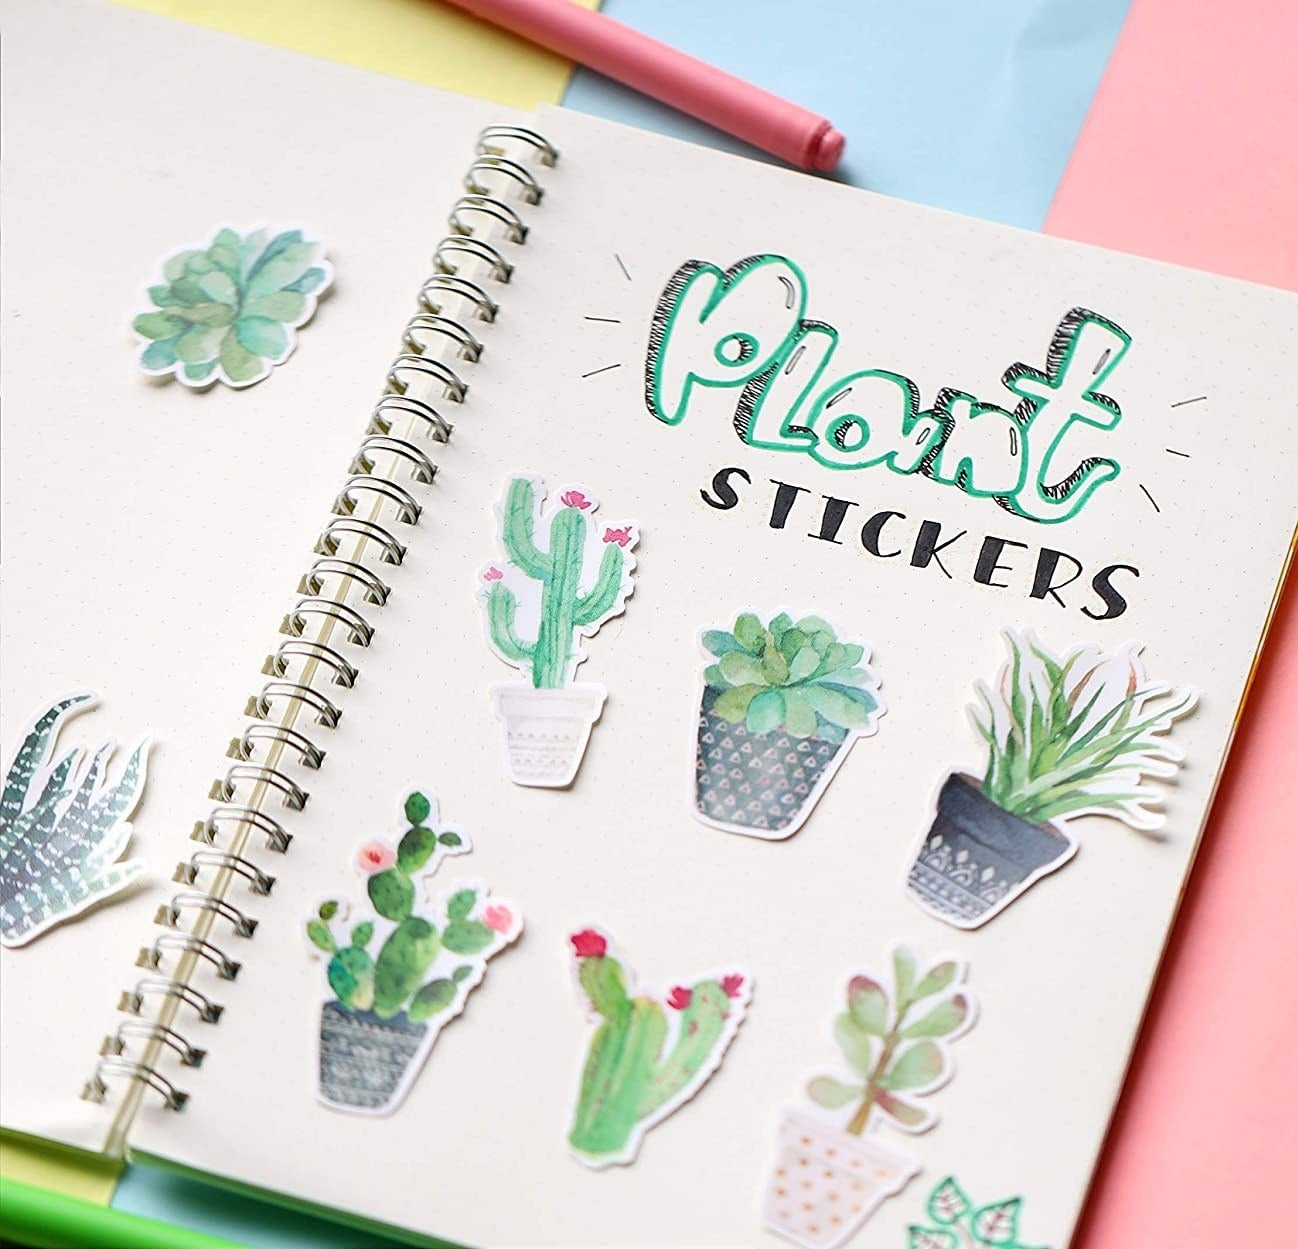 Eight plant stickers inside of a notebook